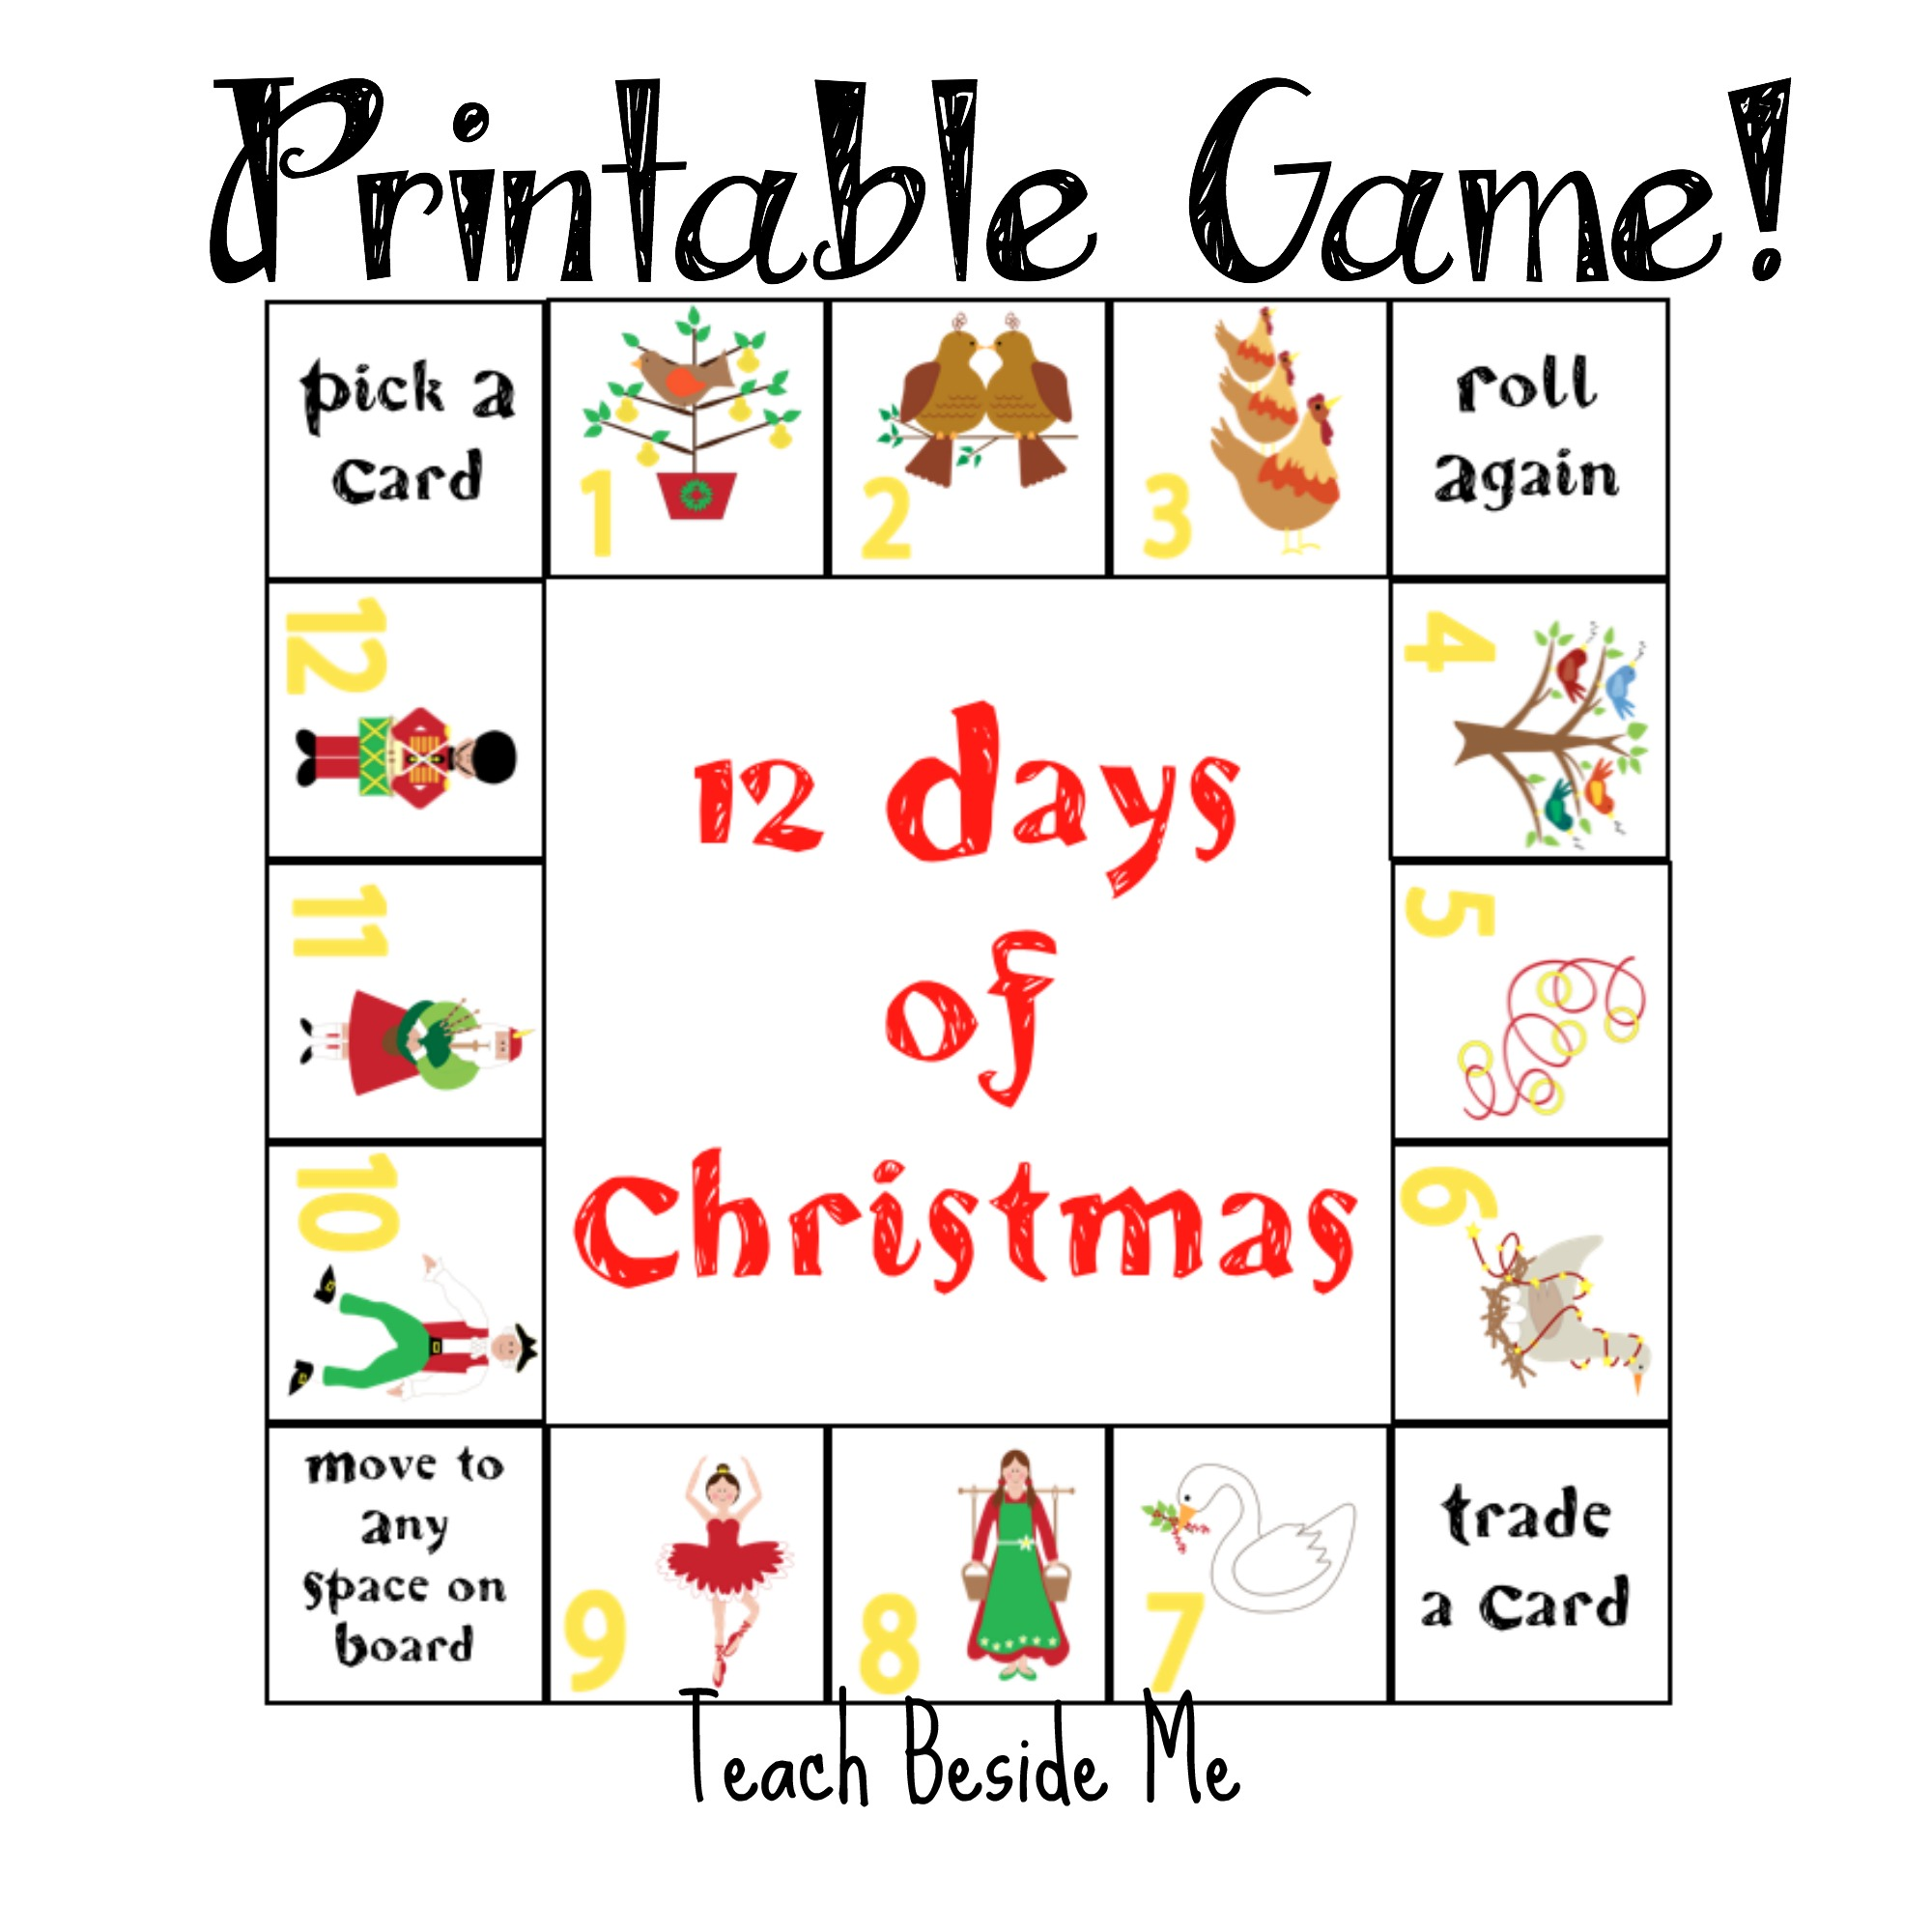 12 days of christmas printable game teach beside me. Black Bedroom Furniture Sets. Home Design Ideas